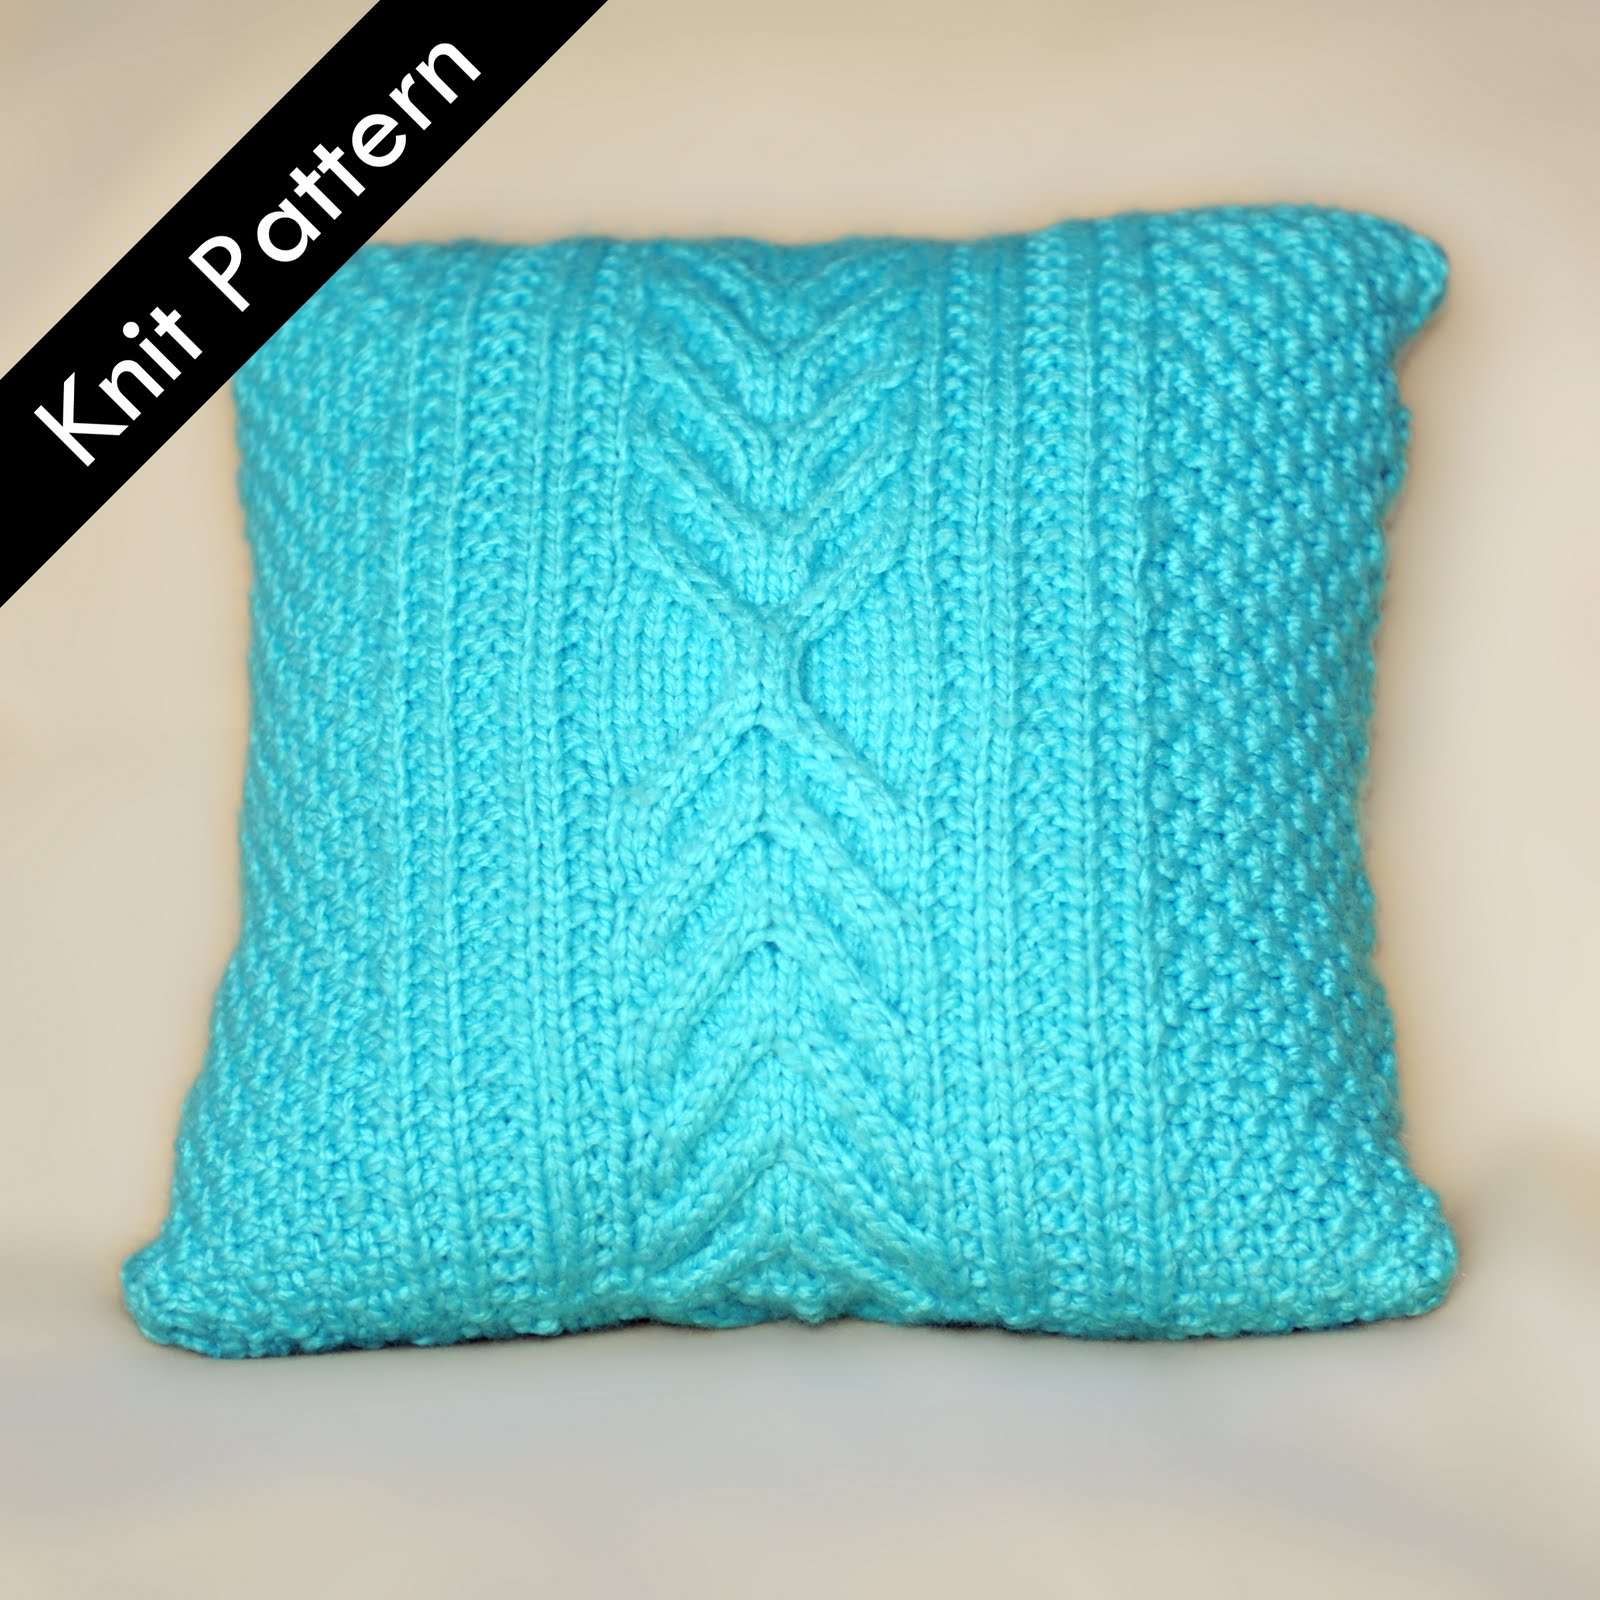 Knitting Pillow Pattern : Knit pillow patterns pattern collections